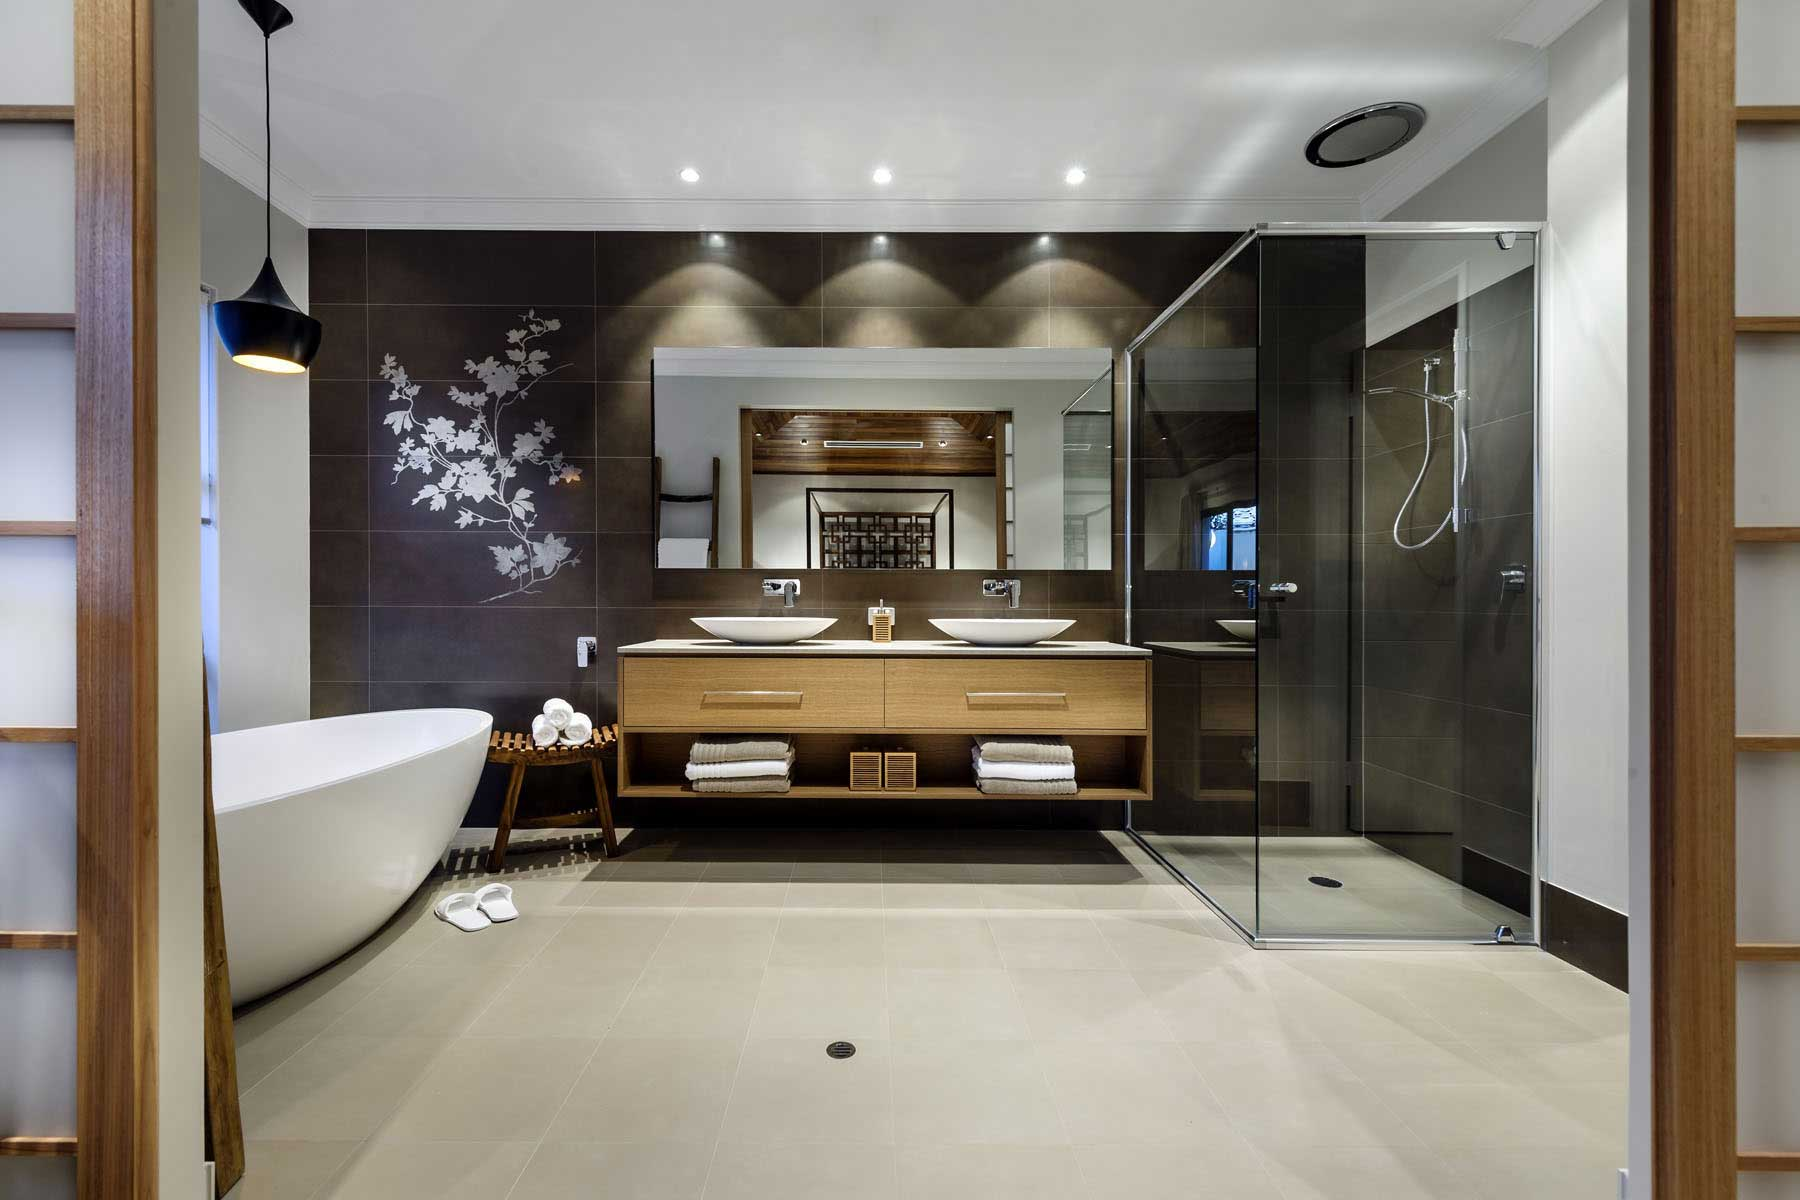 Spacious condo bathroom with Chinese floral mural decor